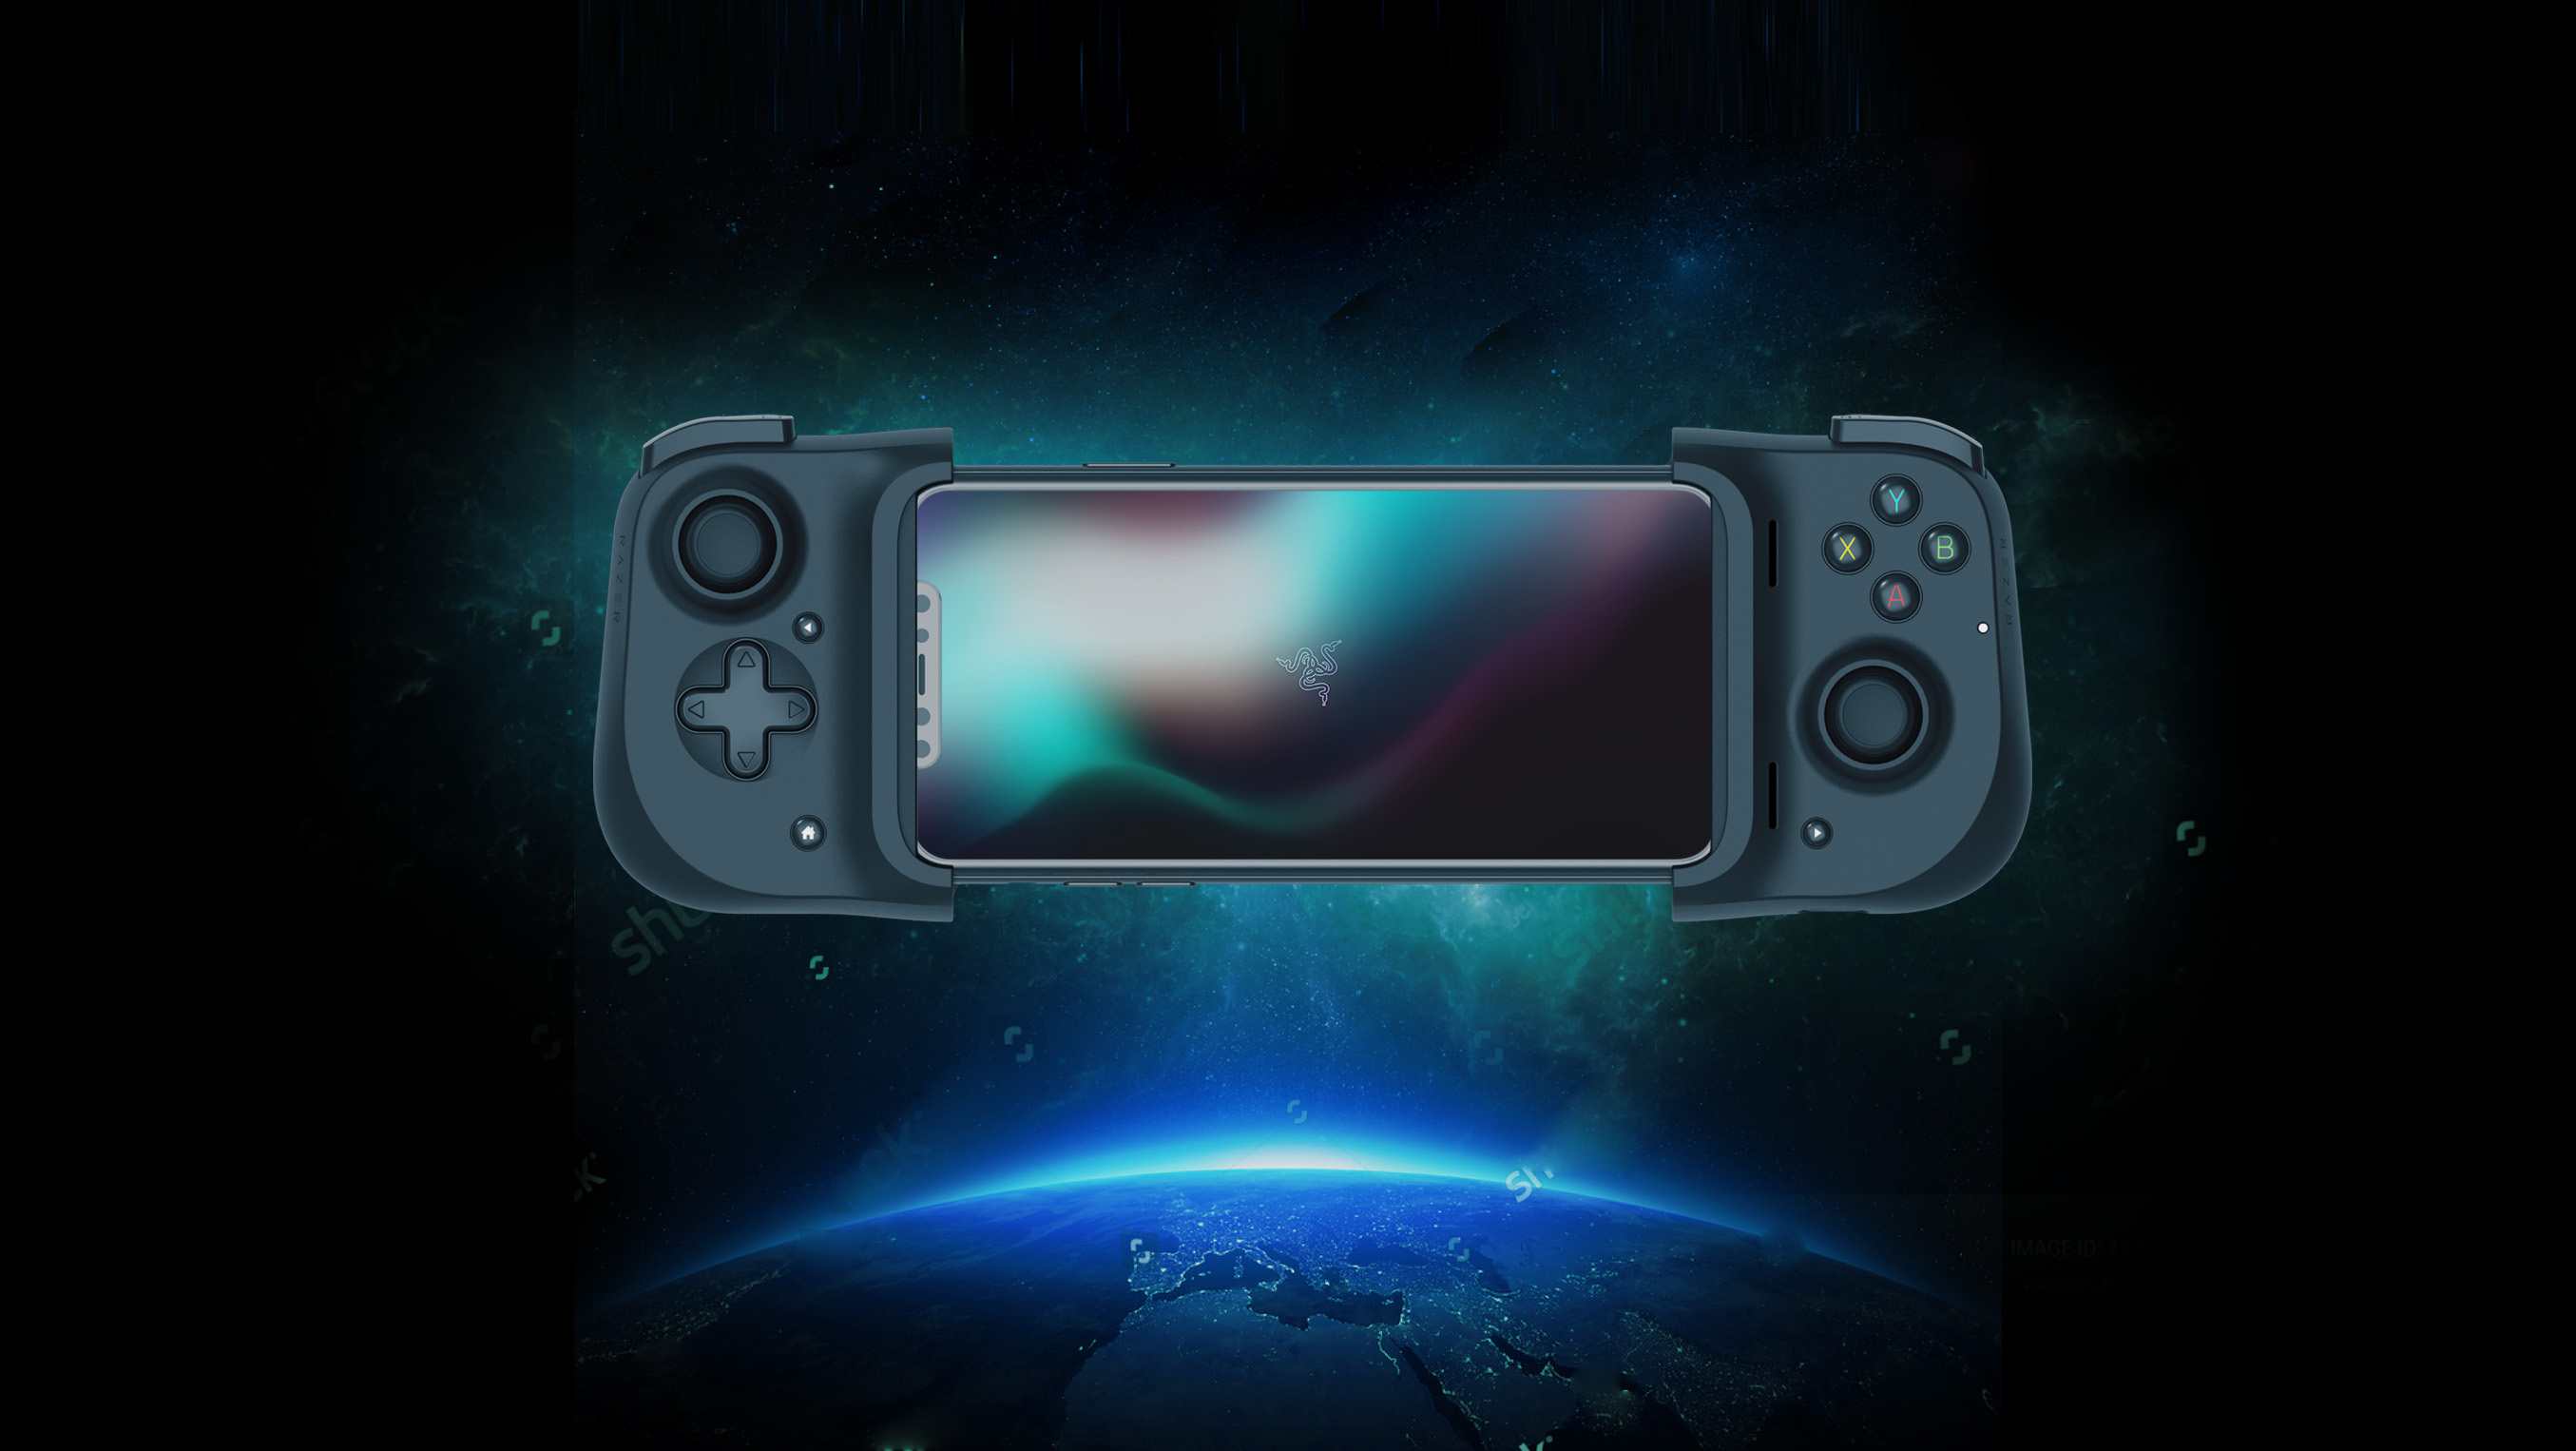 Razer introduces the Kishi game controller that attaches directly to the iPhone